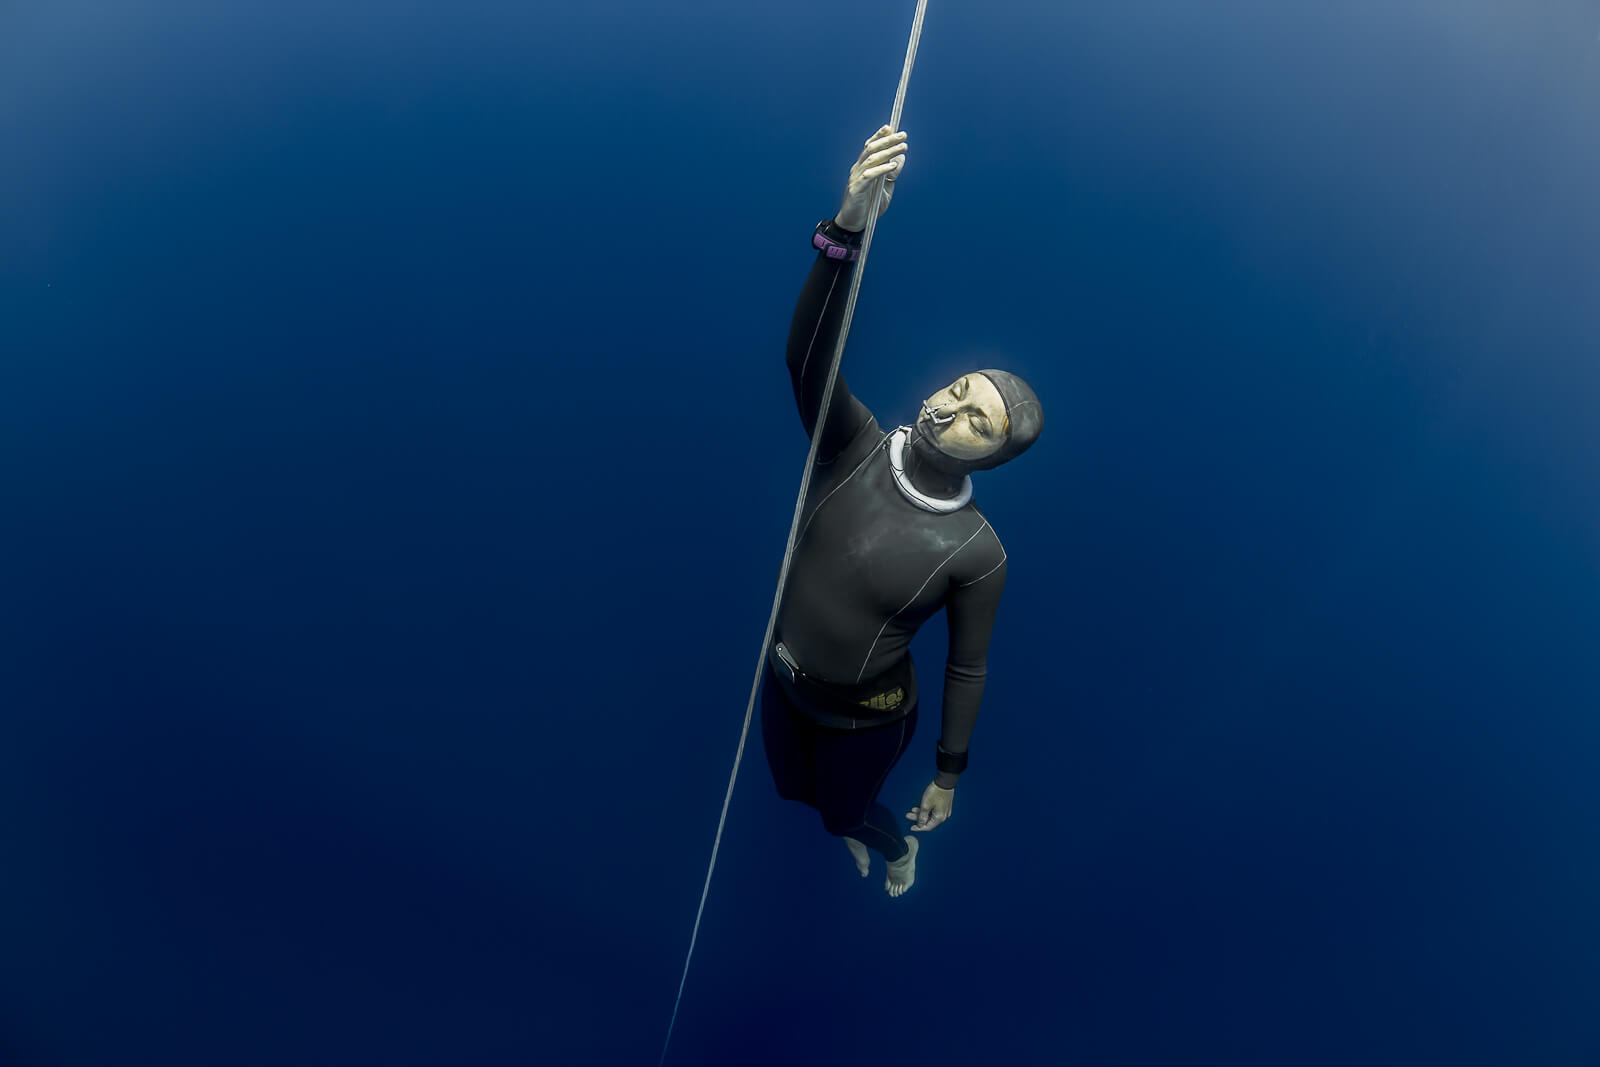 Picture of level 3 deep freediving course